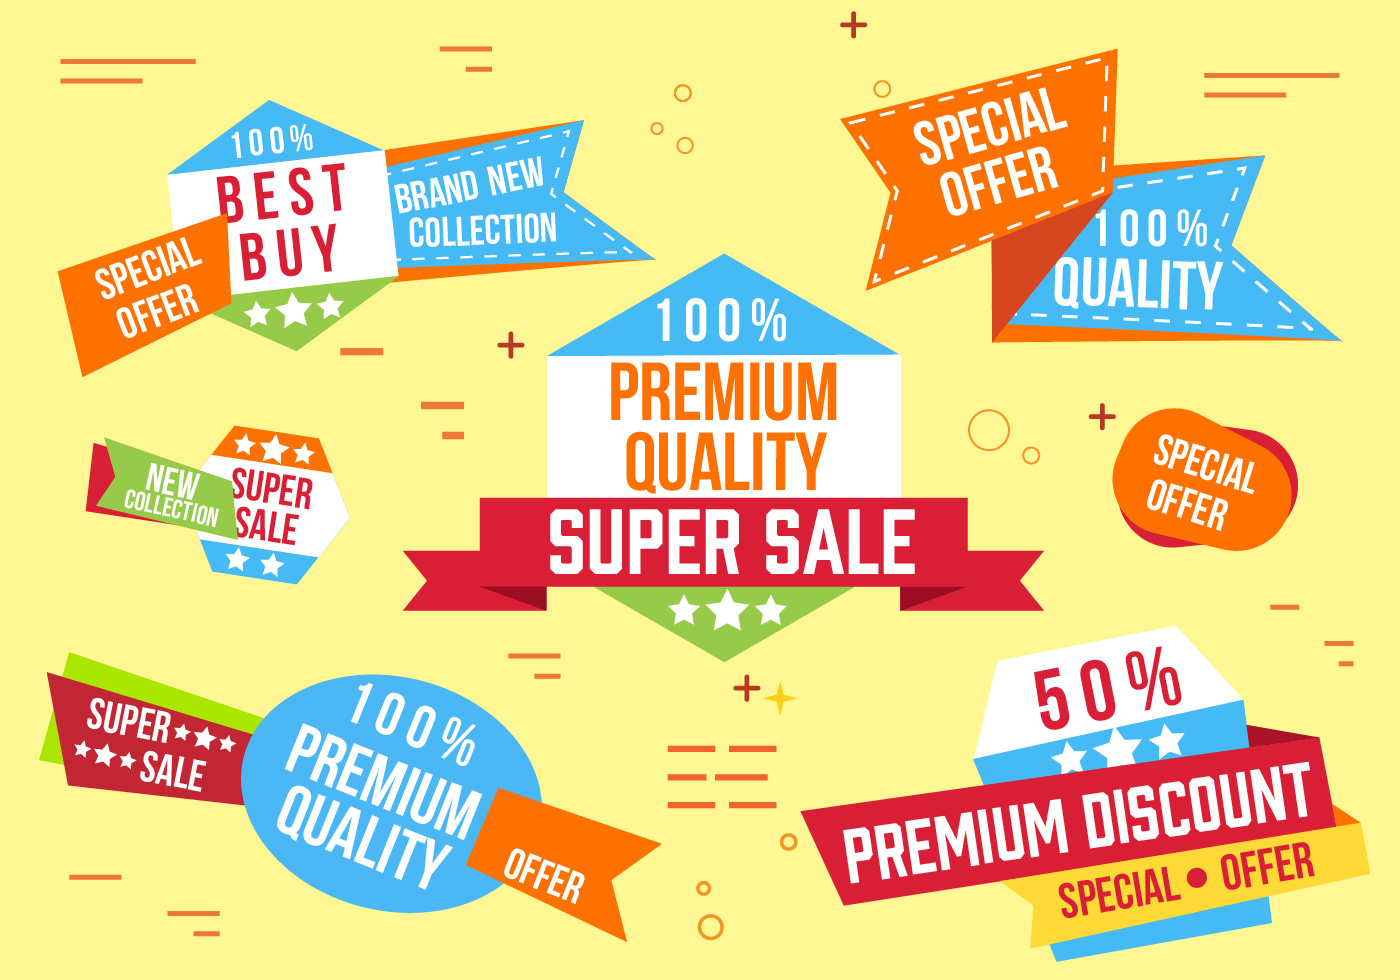 Banner Free Vector Art - (12583 Free Downloads)